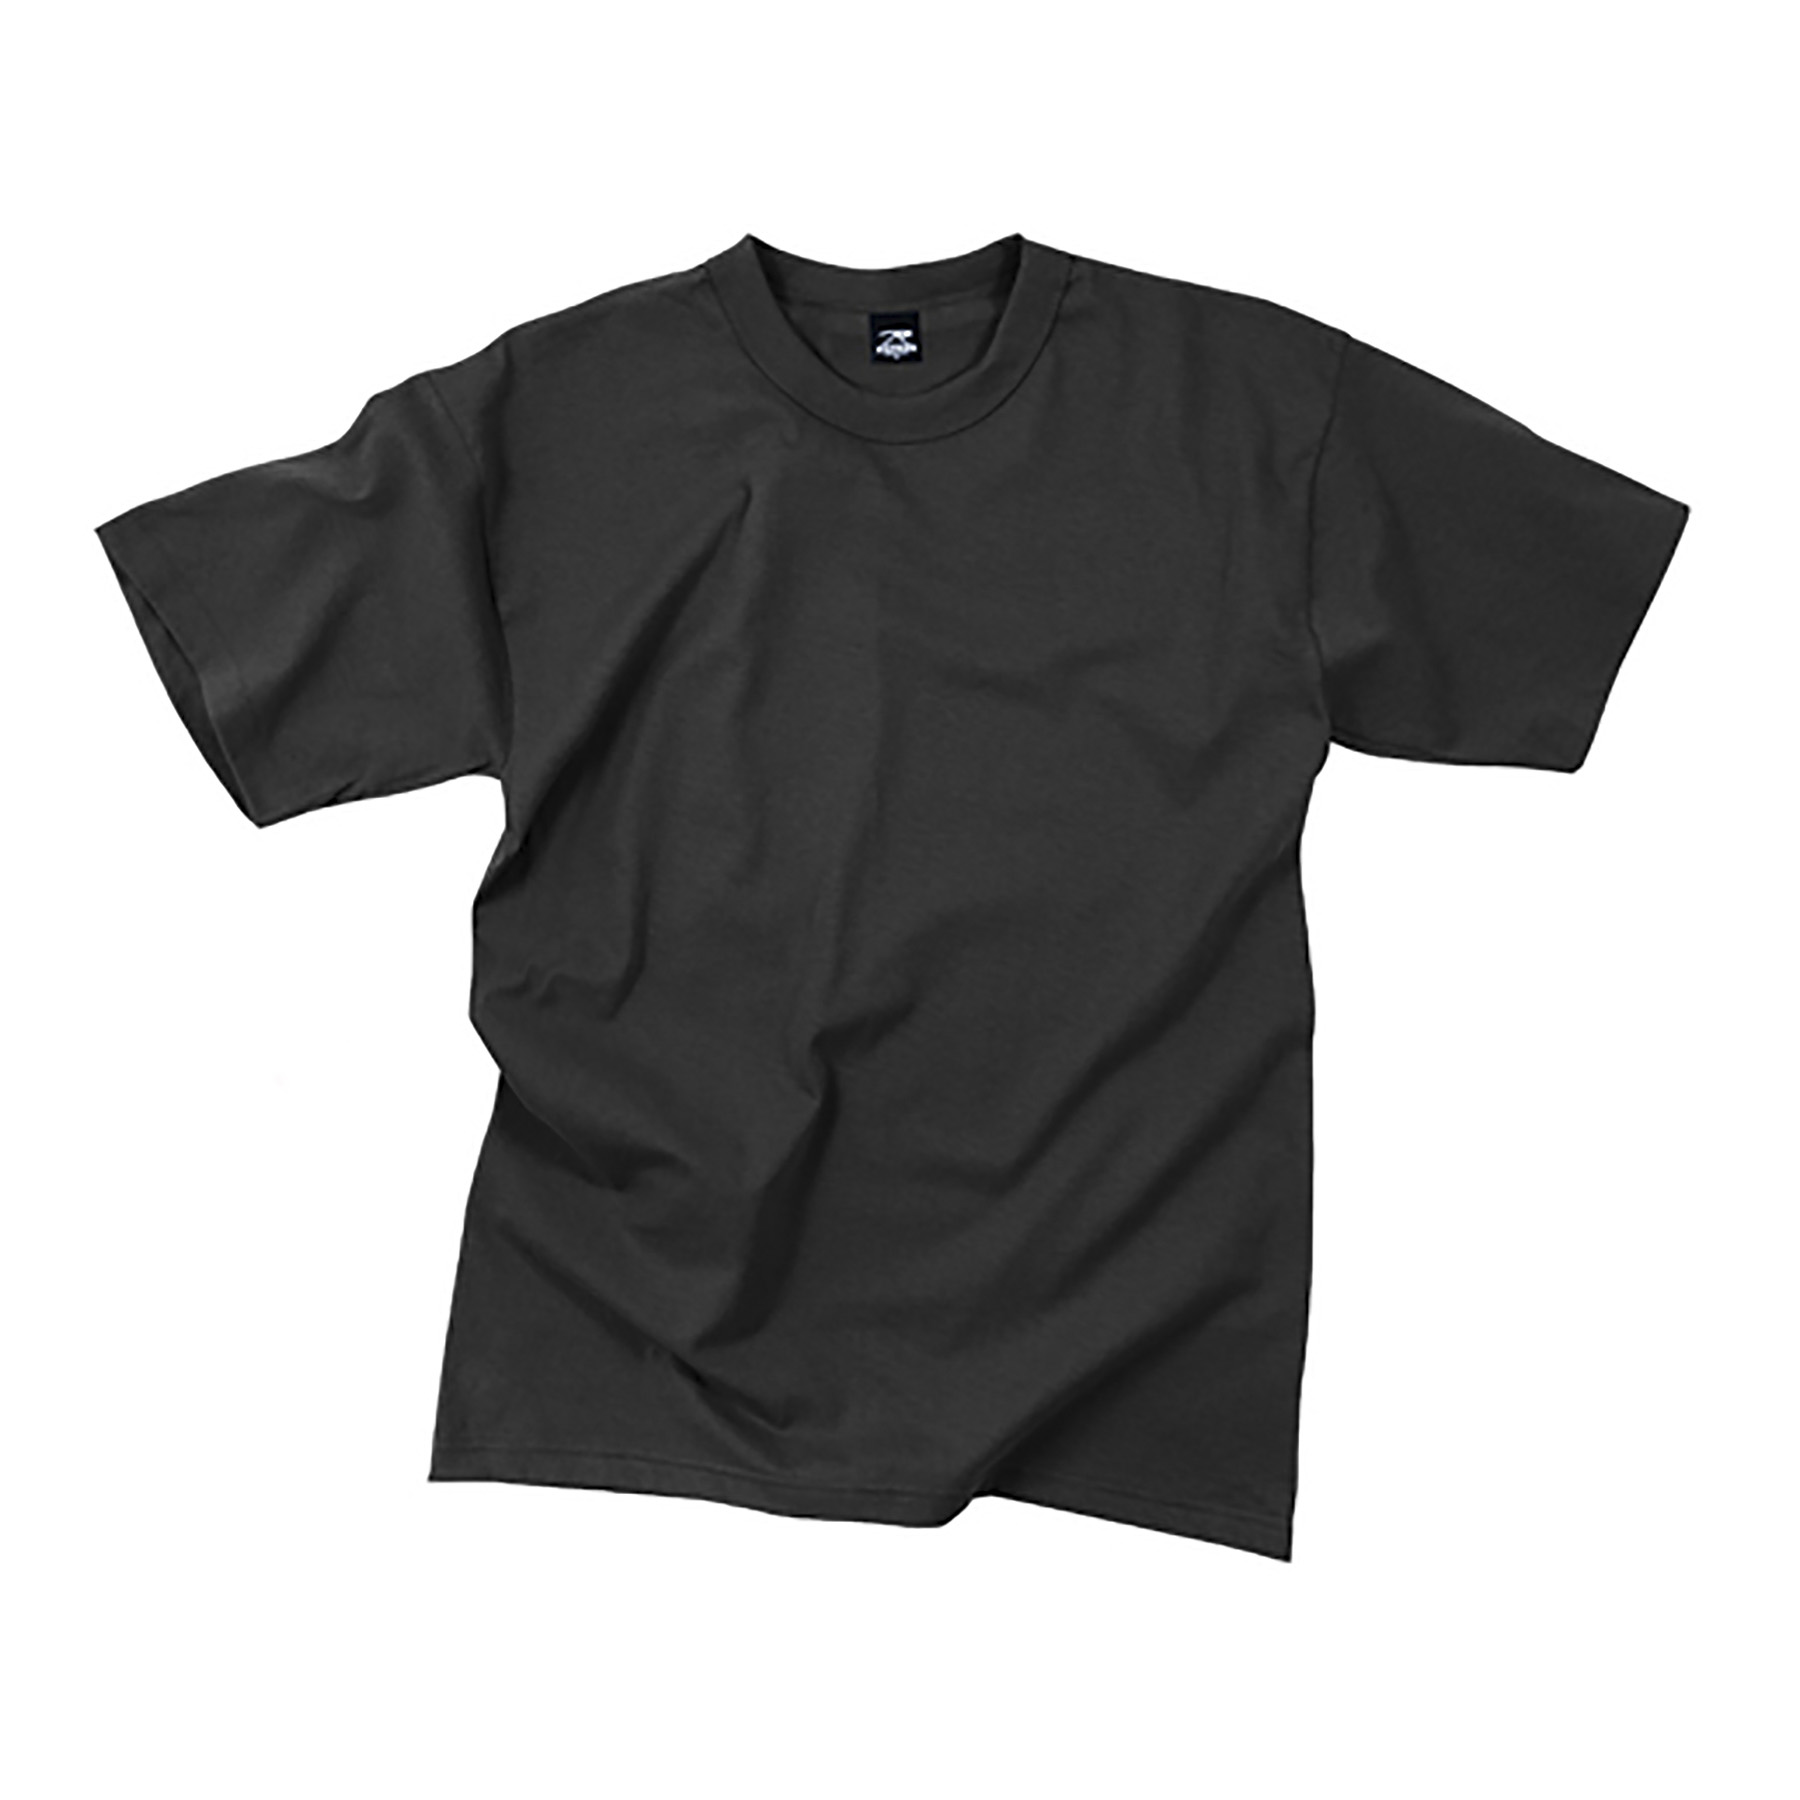 Rothco 100% Cotton T-Shirt (Black)